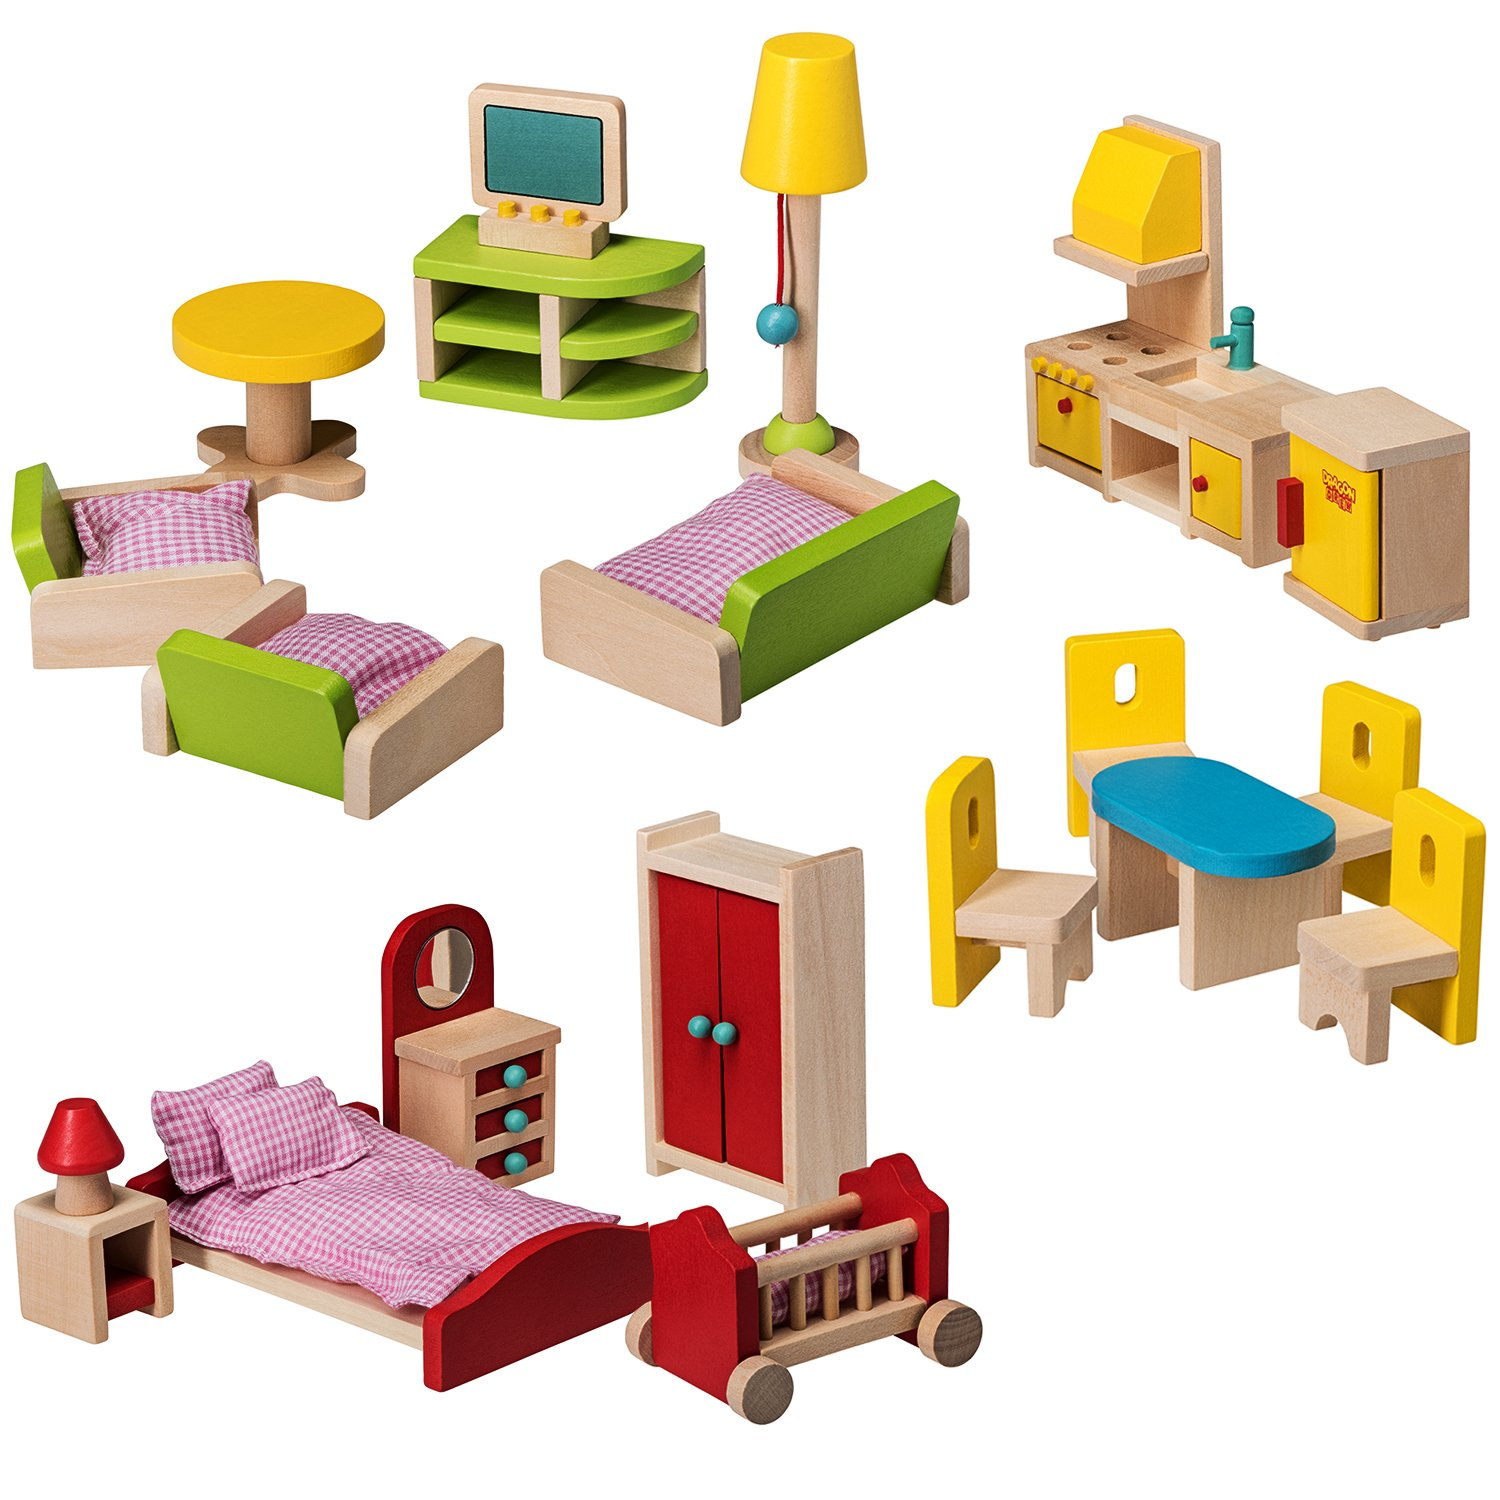 Dragon Drew Wooden Dollhouse Furniture Set - 27 Piece Kit - Living Room, Bedroom and Kitchen Accessories, 100% Natural Wood, Nontoxic Paint, Smooth Edges by Dragon Drew